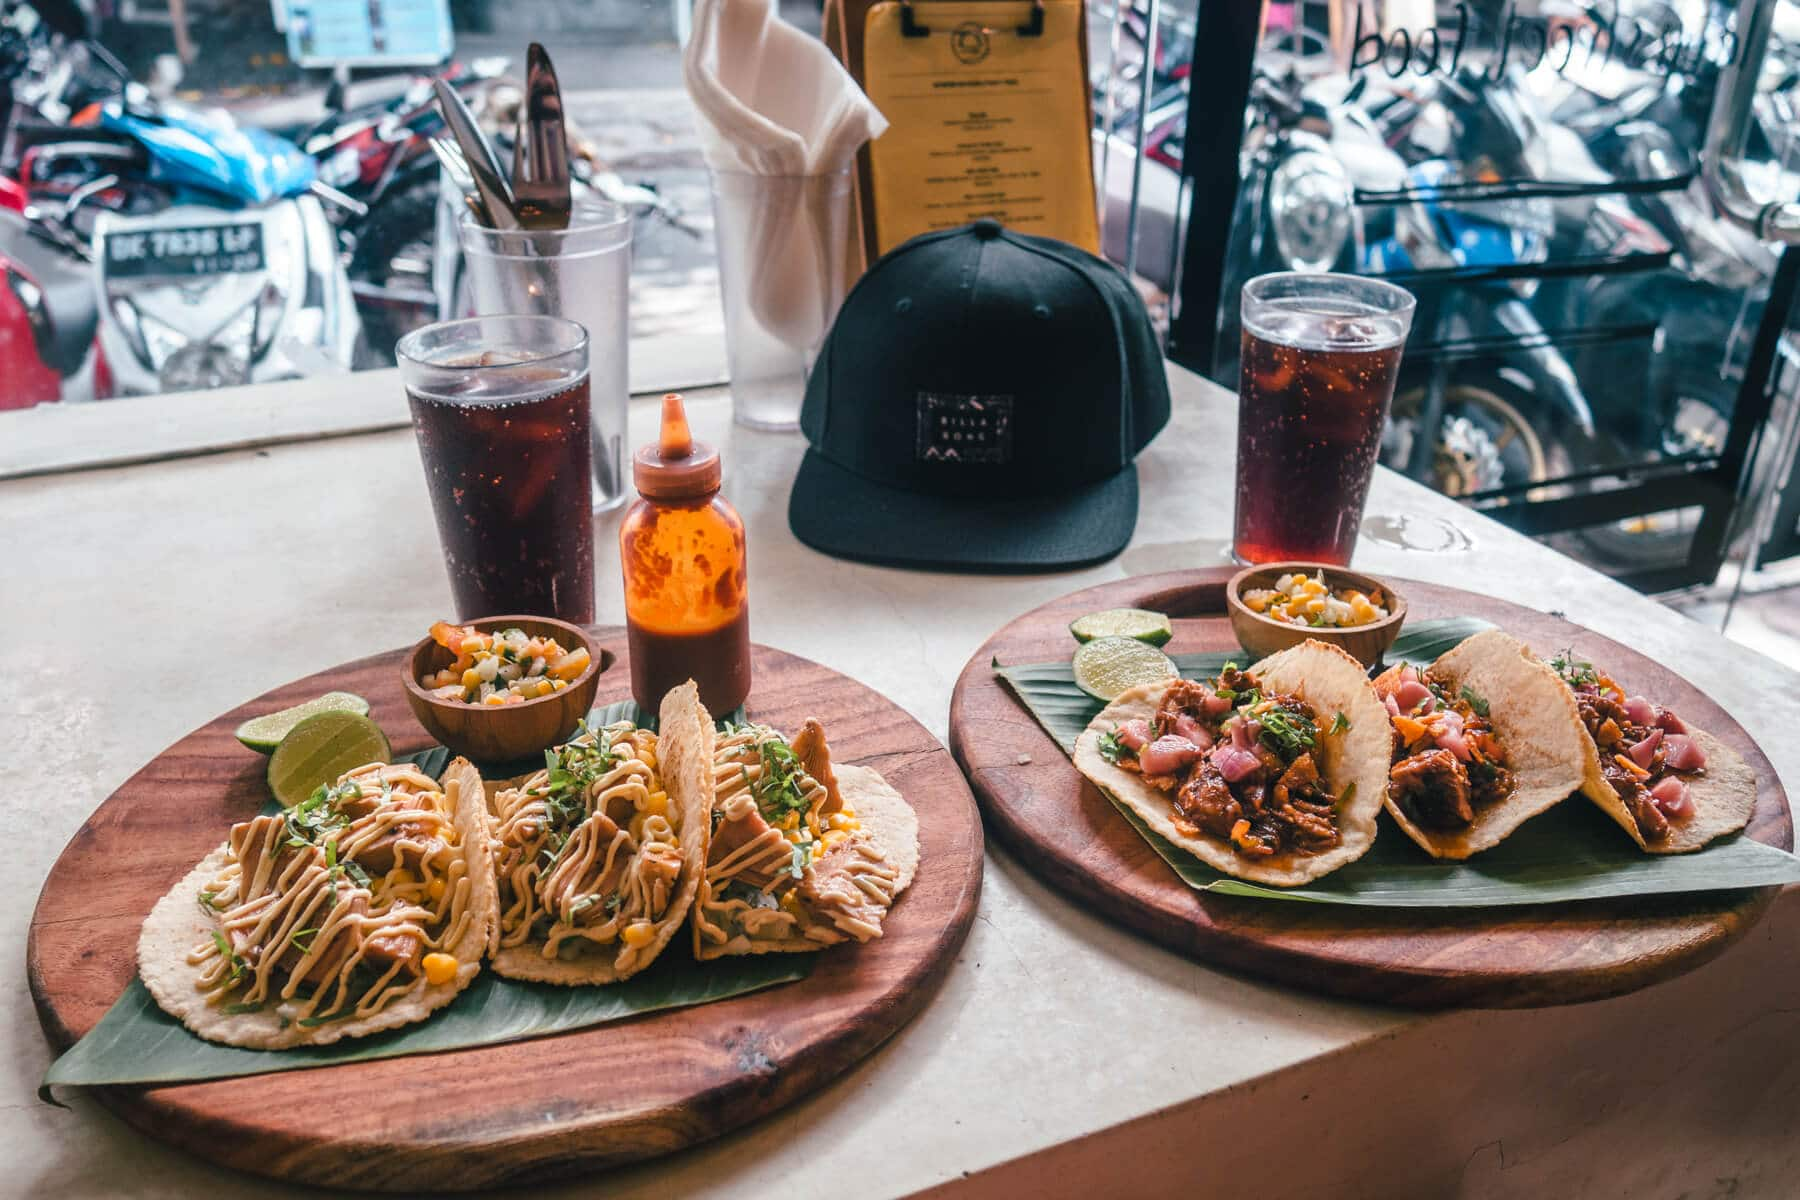 Island Life #4 - Delicious tacos at Cantina in Ubud